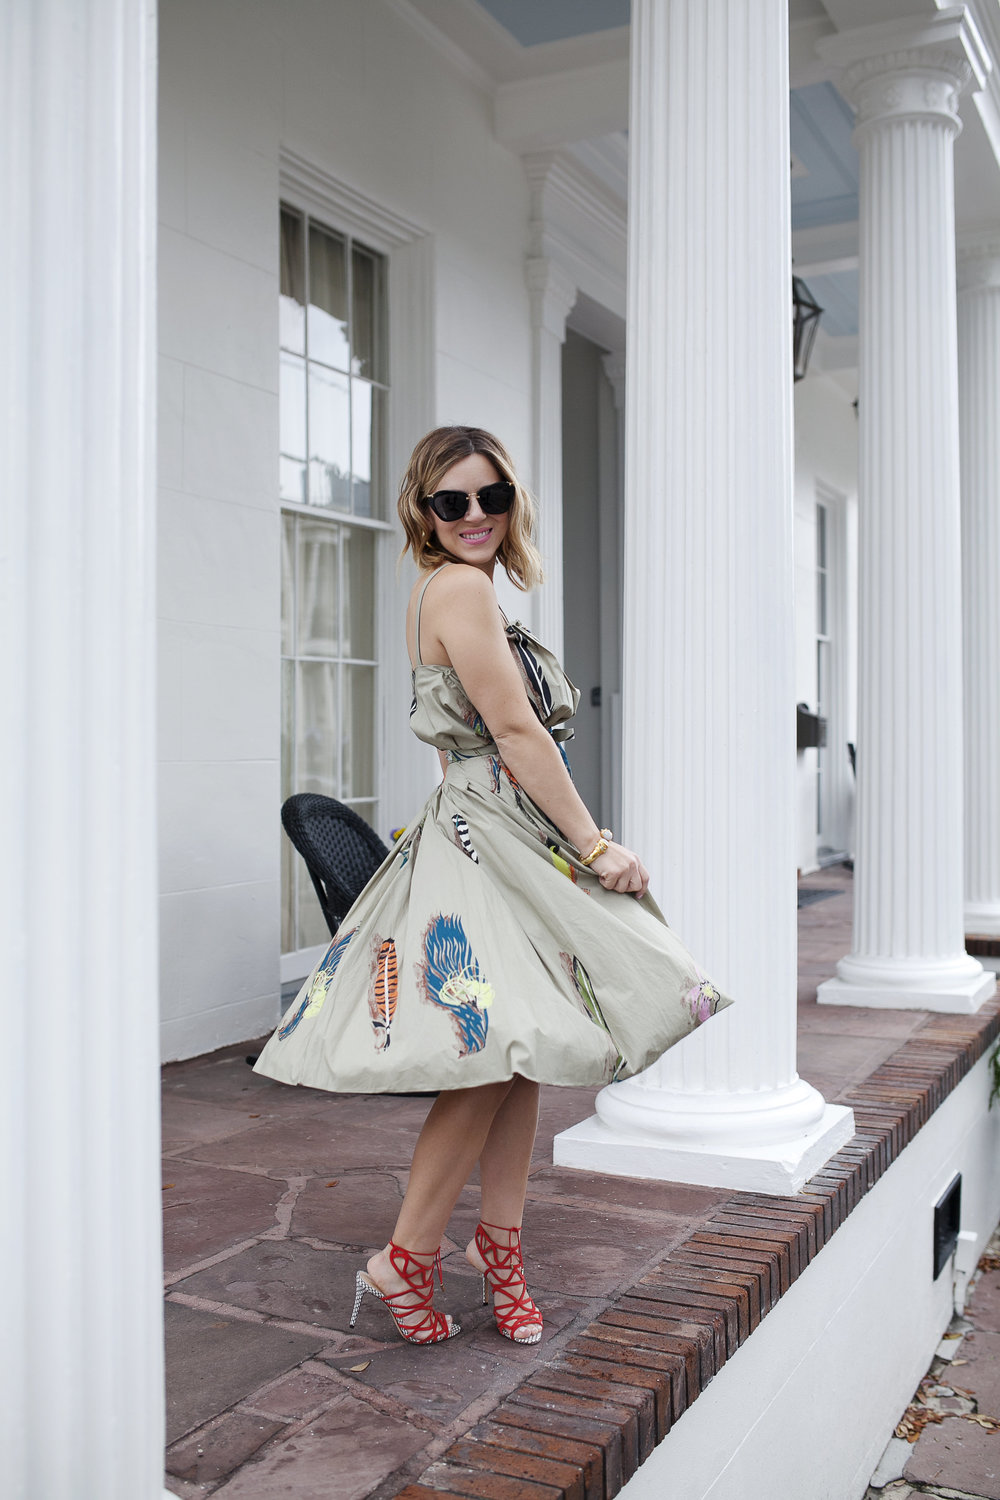 Marni dress with feathers, pink chanel bag and red strappy shoes 5.jpg